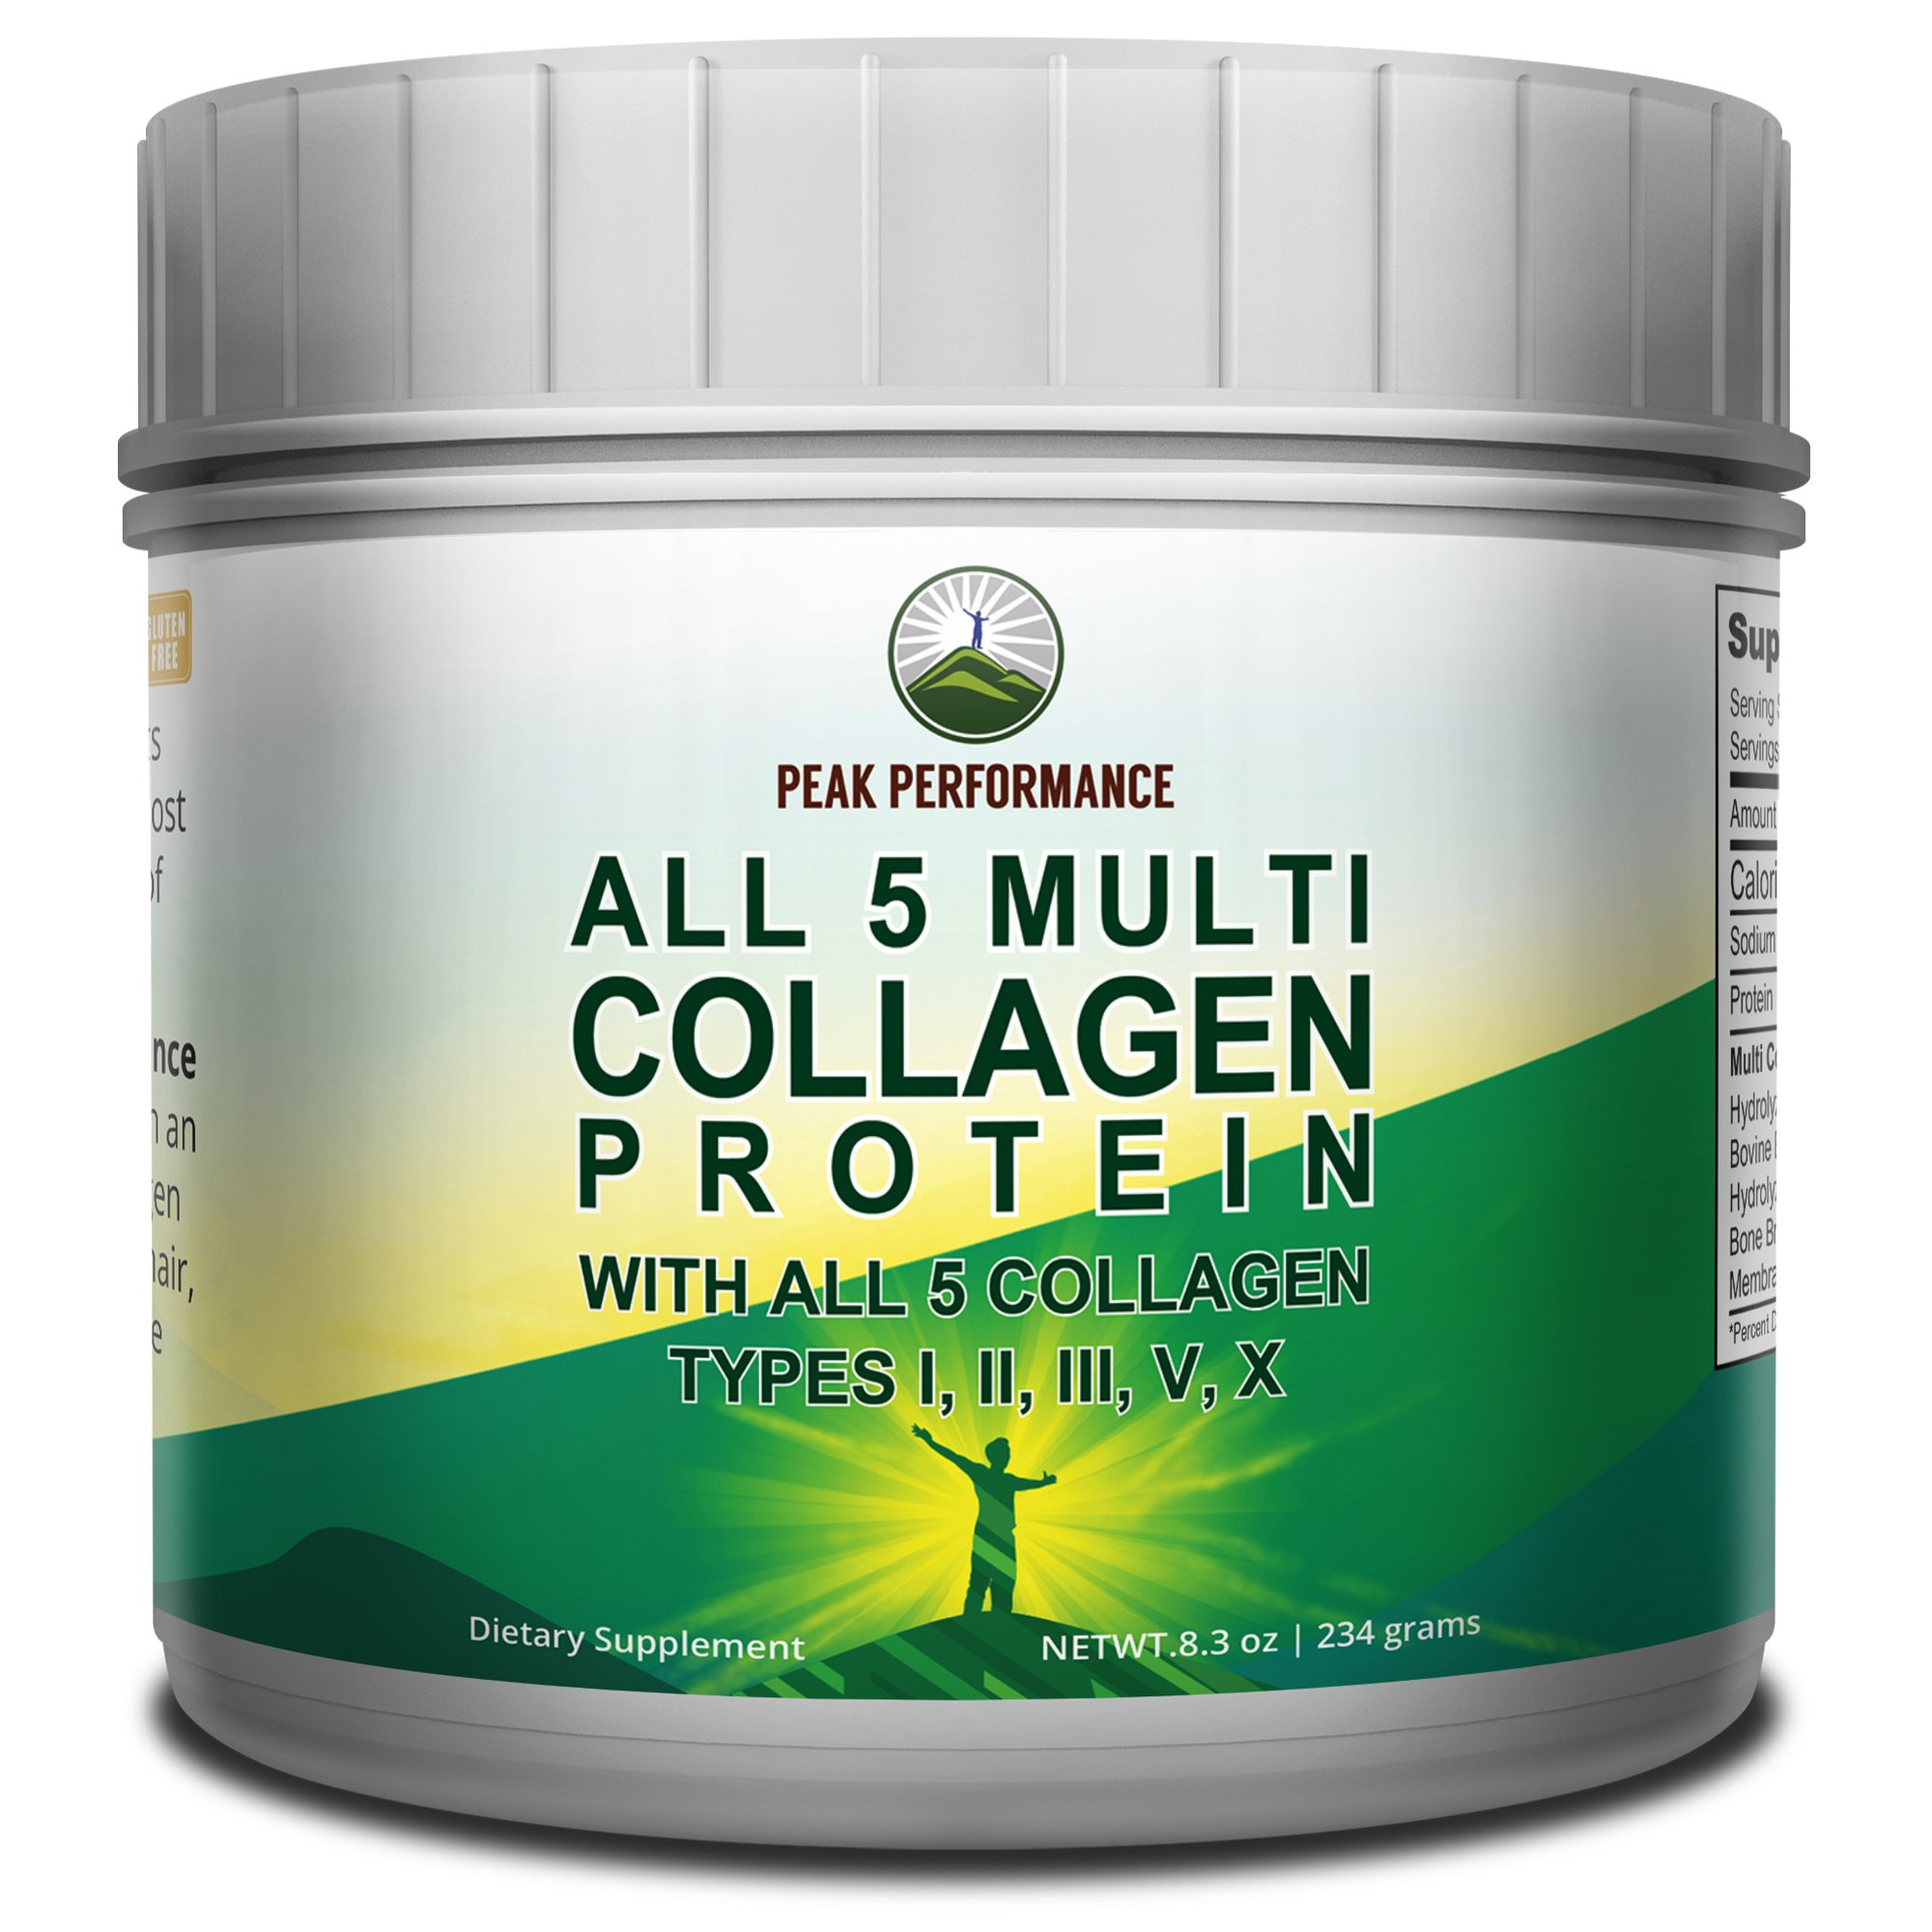 All 5 Multi-Collagen Protein Powder Peptides by Peak Performance. Multi-Collagen Contains All Types I, II, III,V, X. Keto, Paleo Friendly with Hydrolyzed Bovine, Marine, Chicken, Bone Broth Collagens by Peak Performance